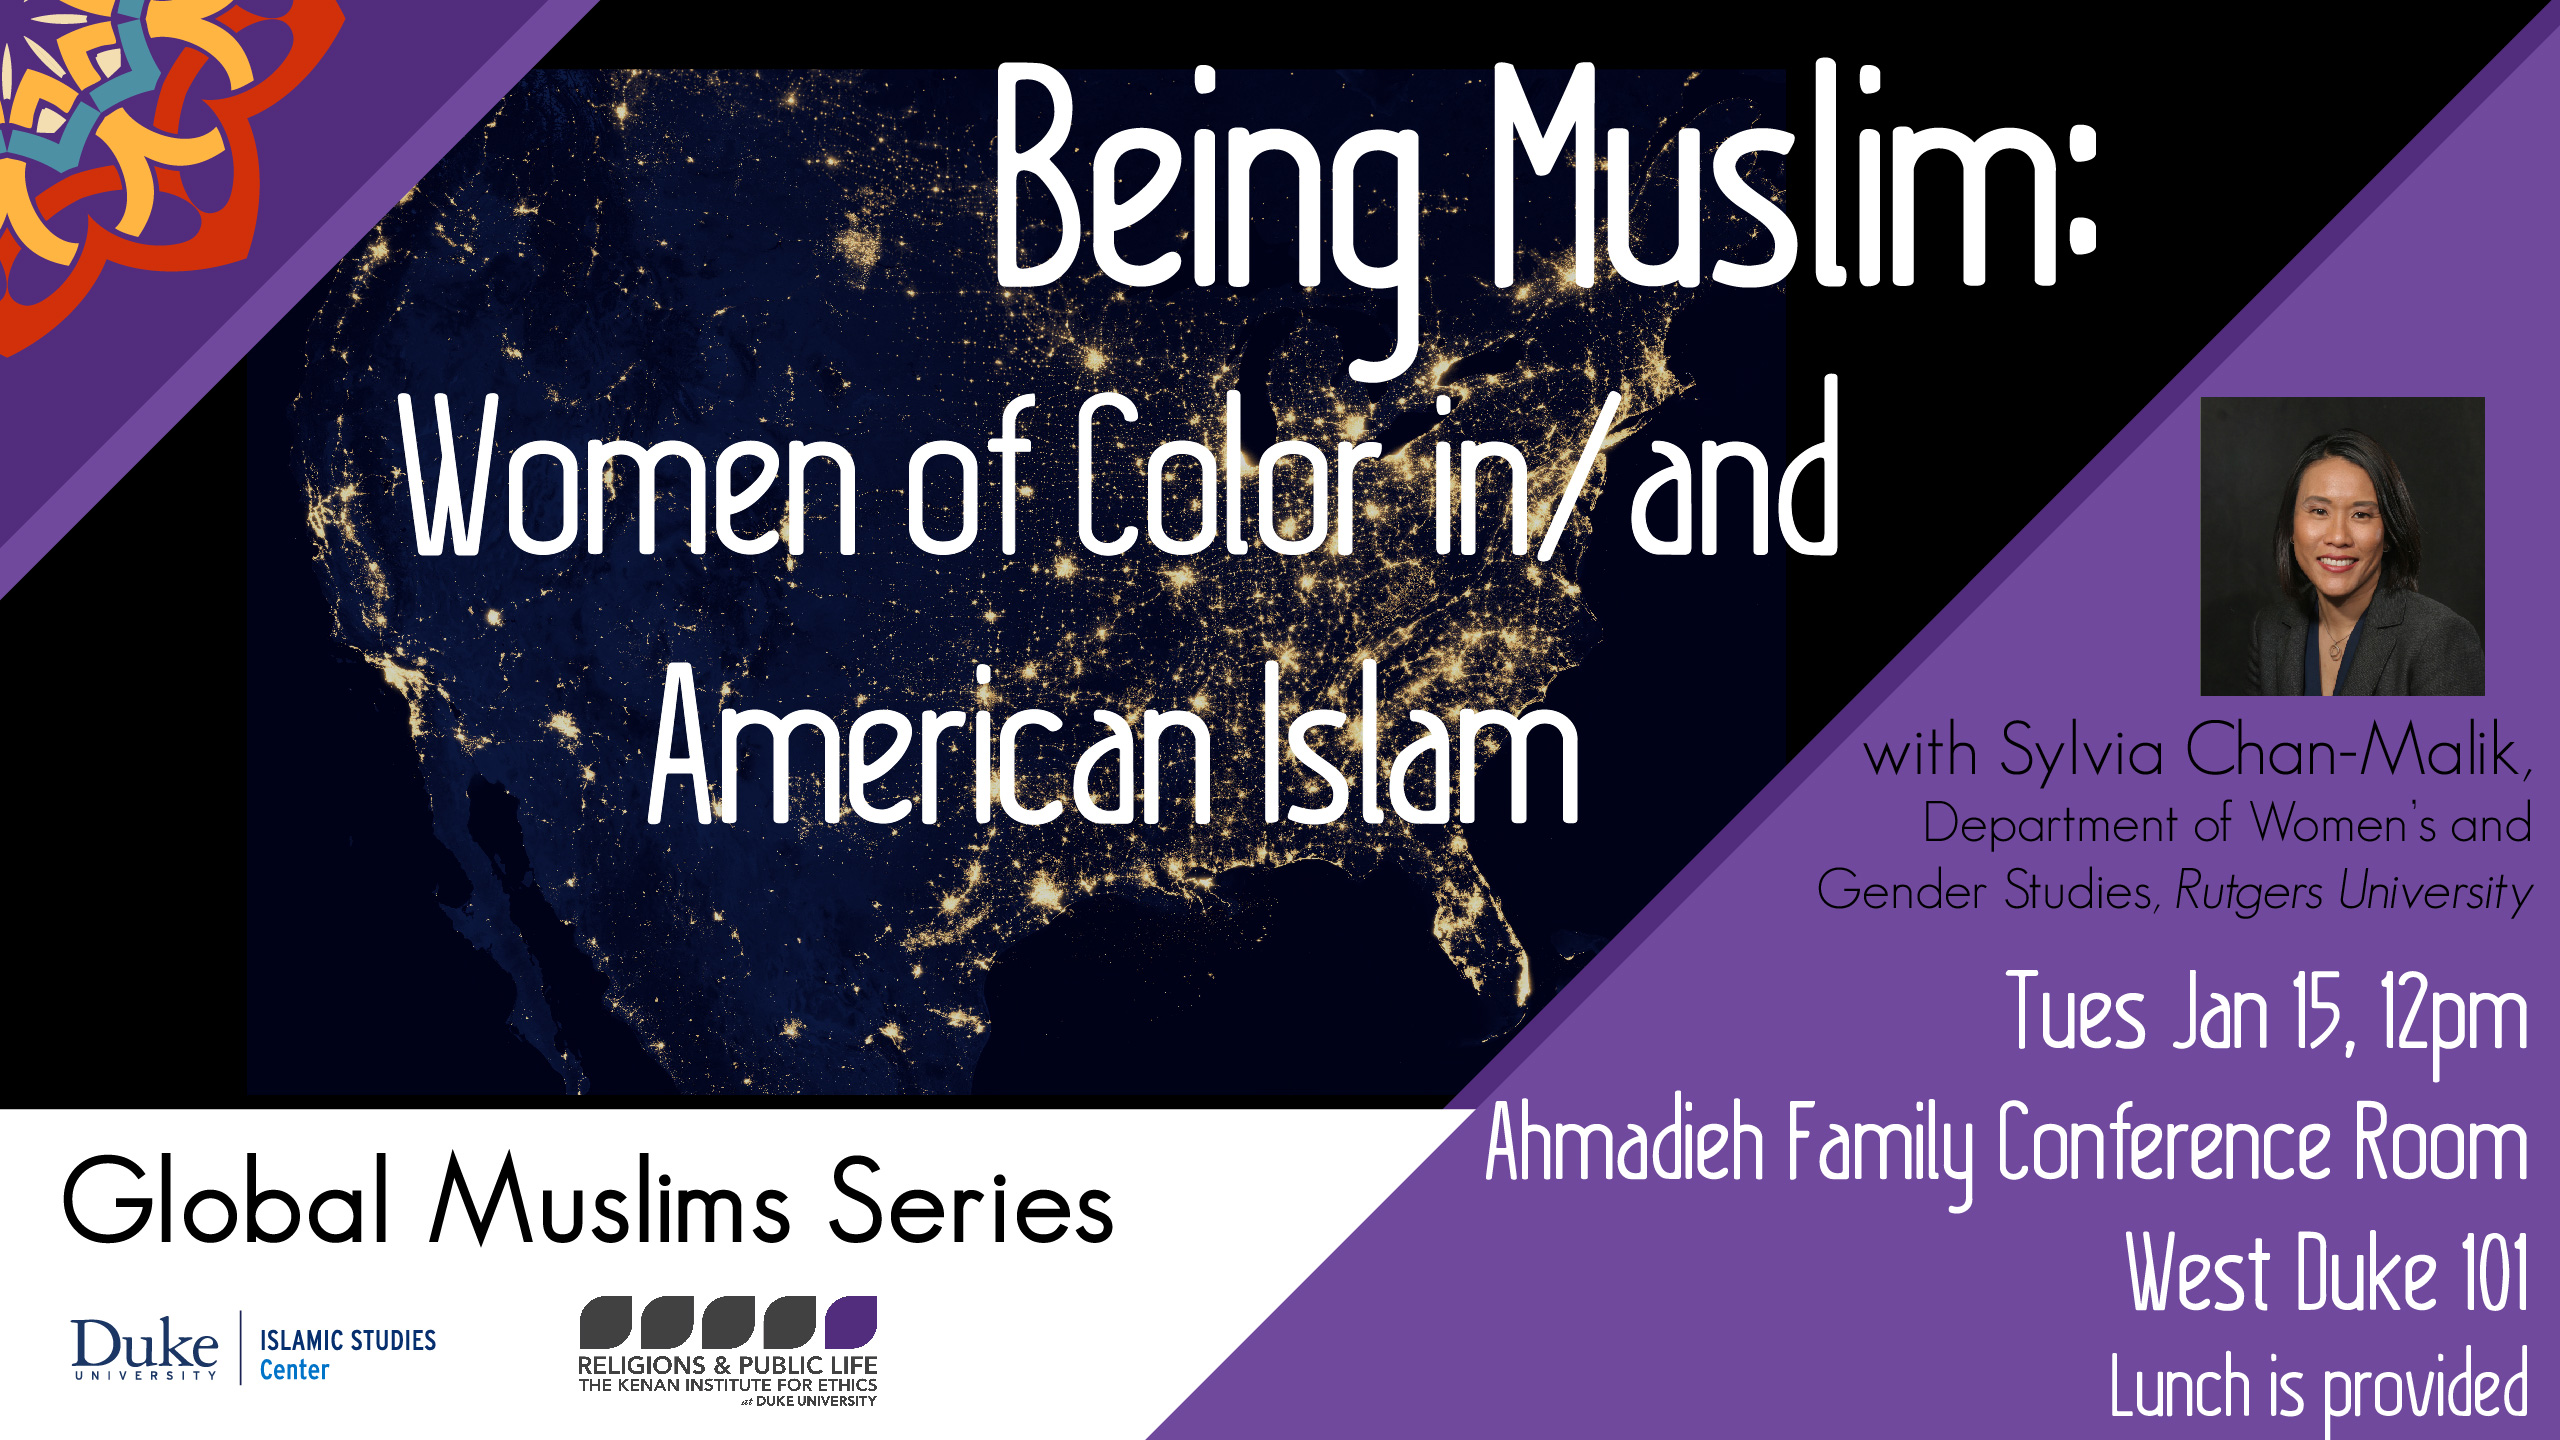 Being Muslim: Women of Color in/and American Islam